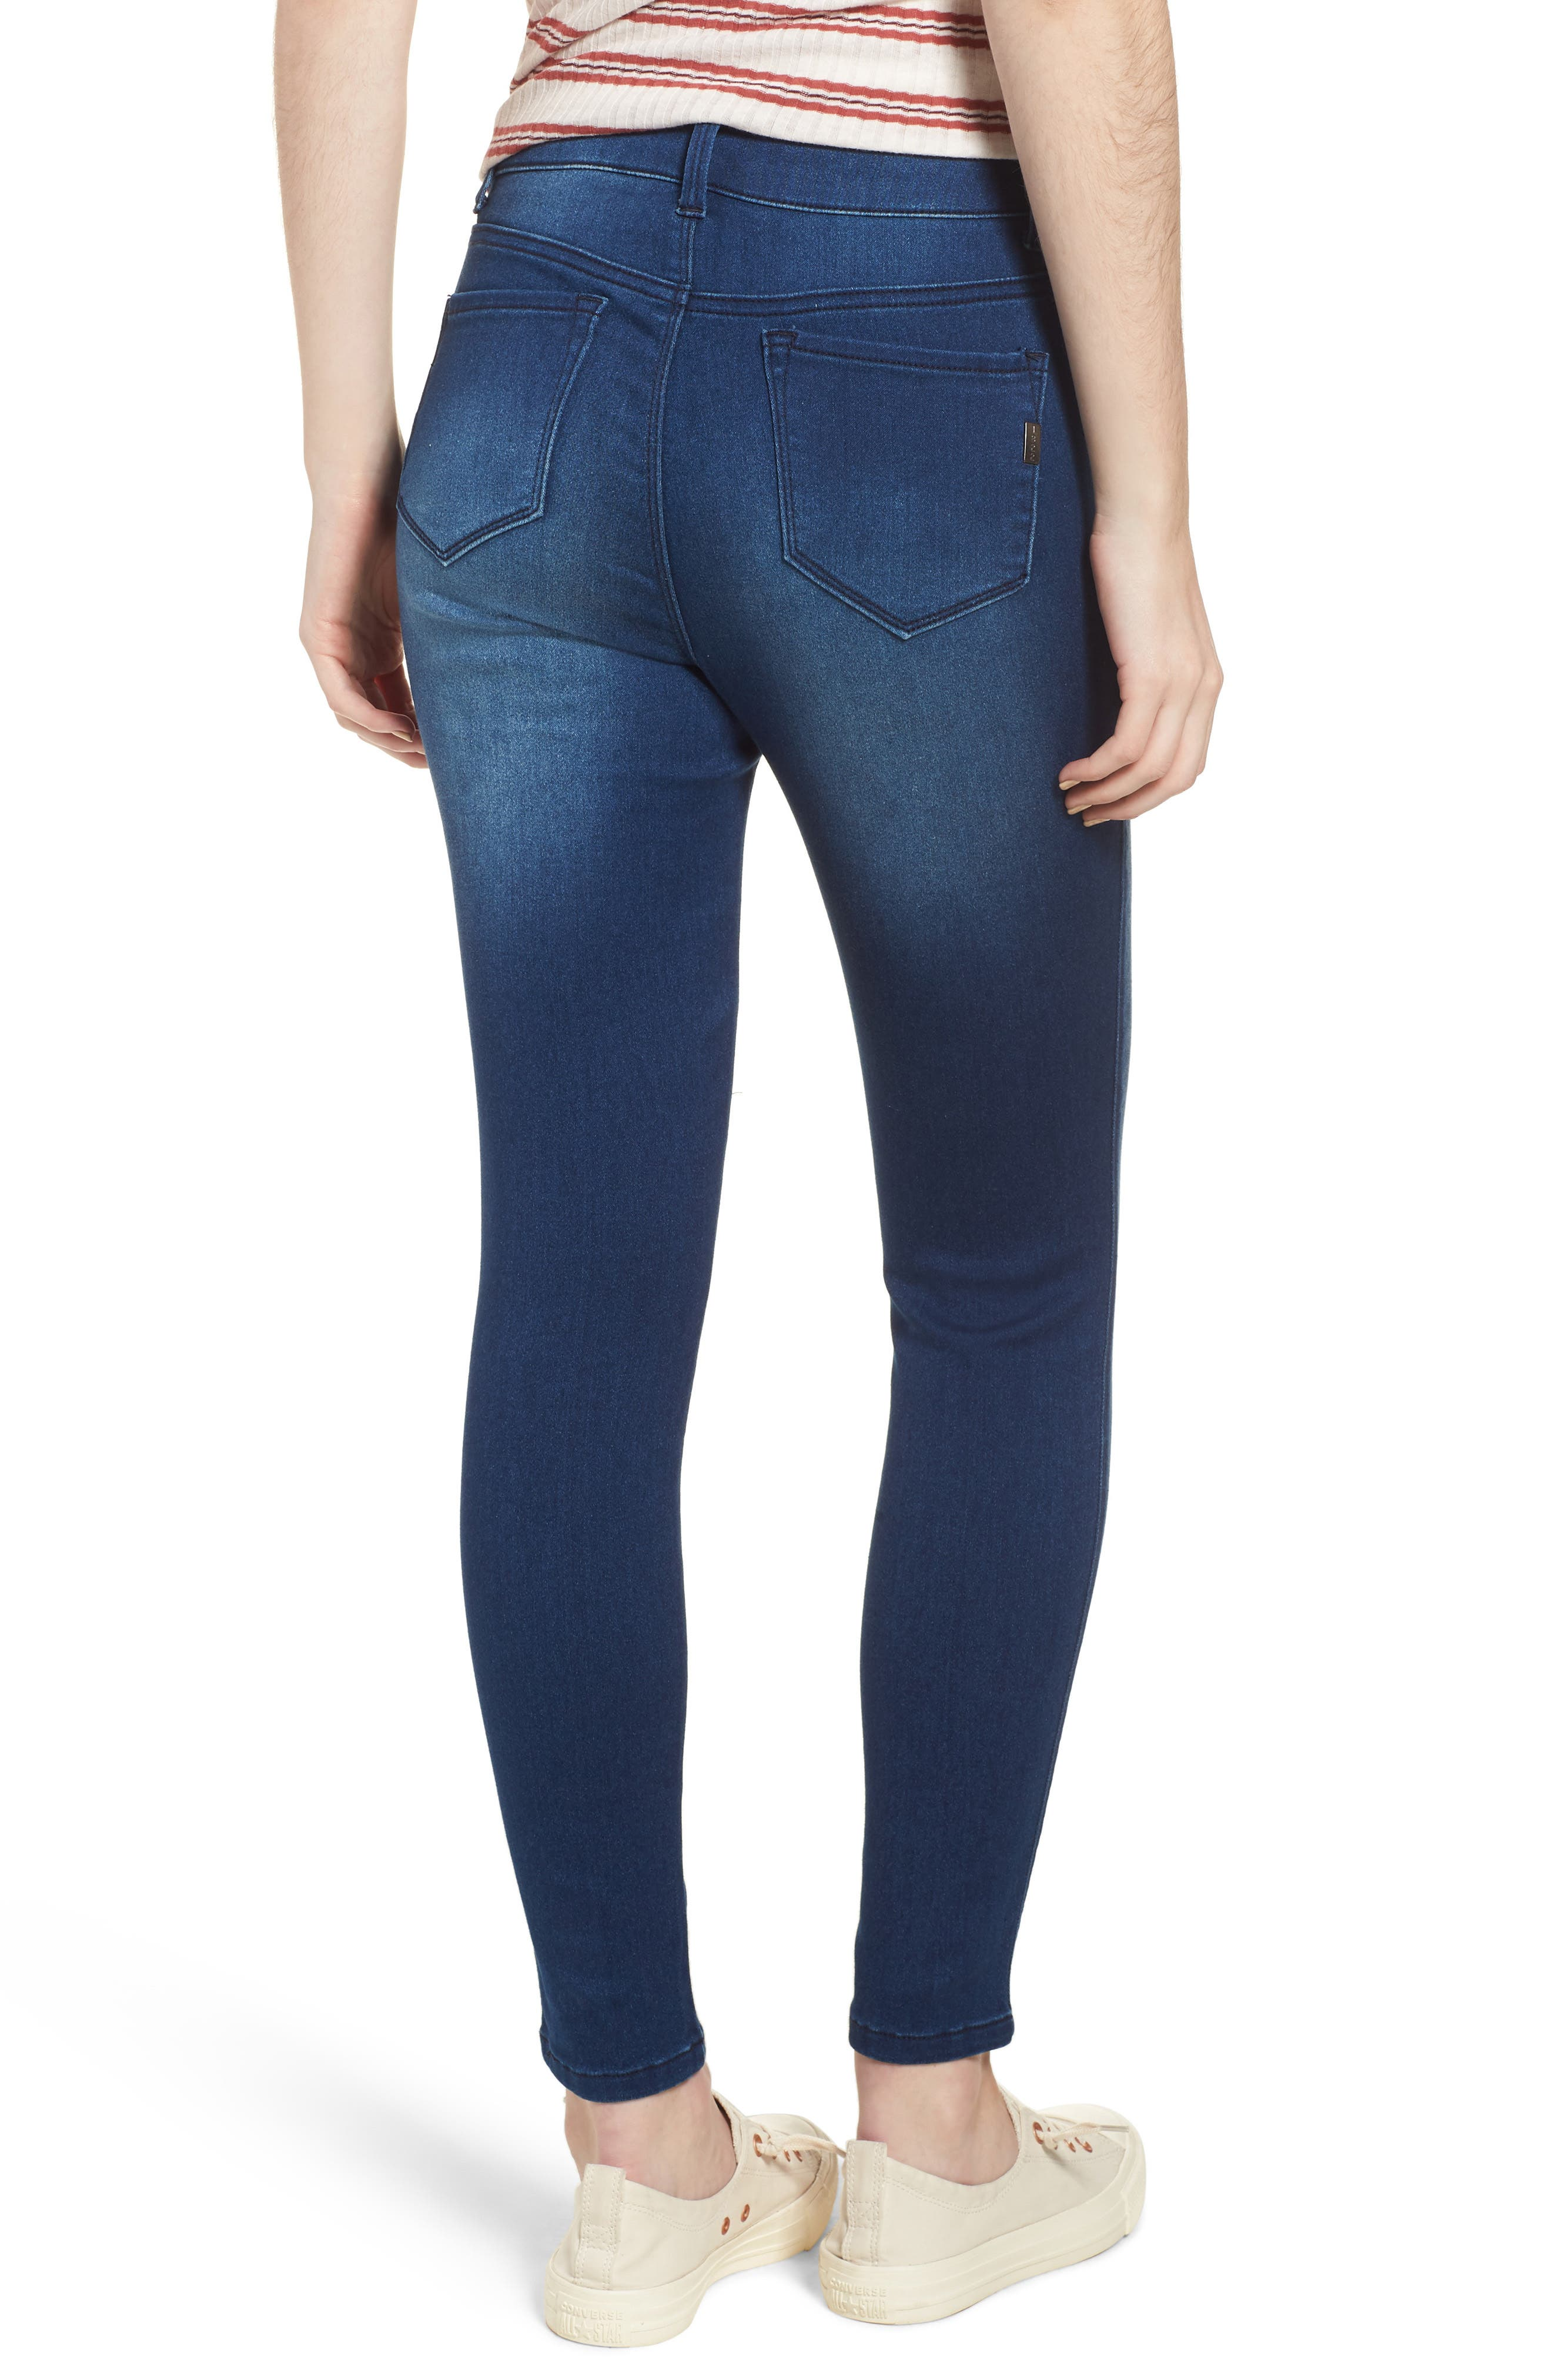 Butter High Waist Skinny Ankle Jeans,                             Alternate thumbnail 2, color,                             DONNA